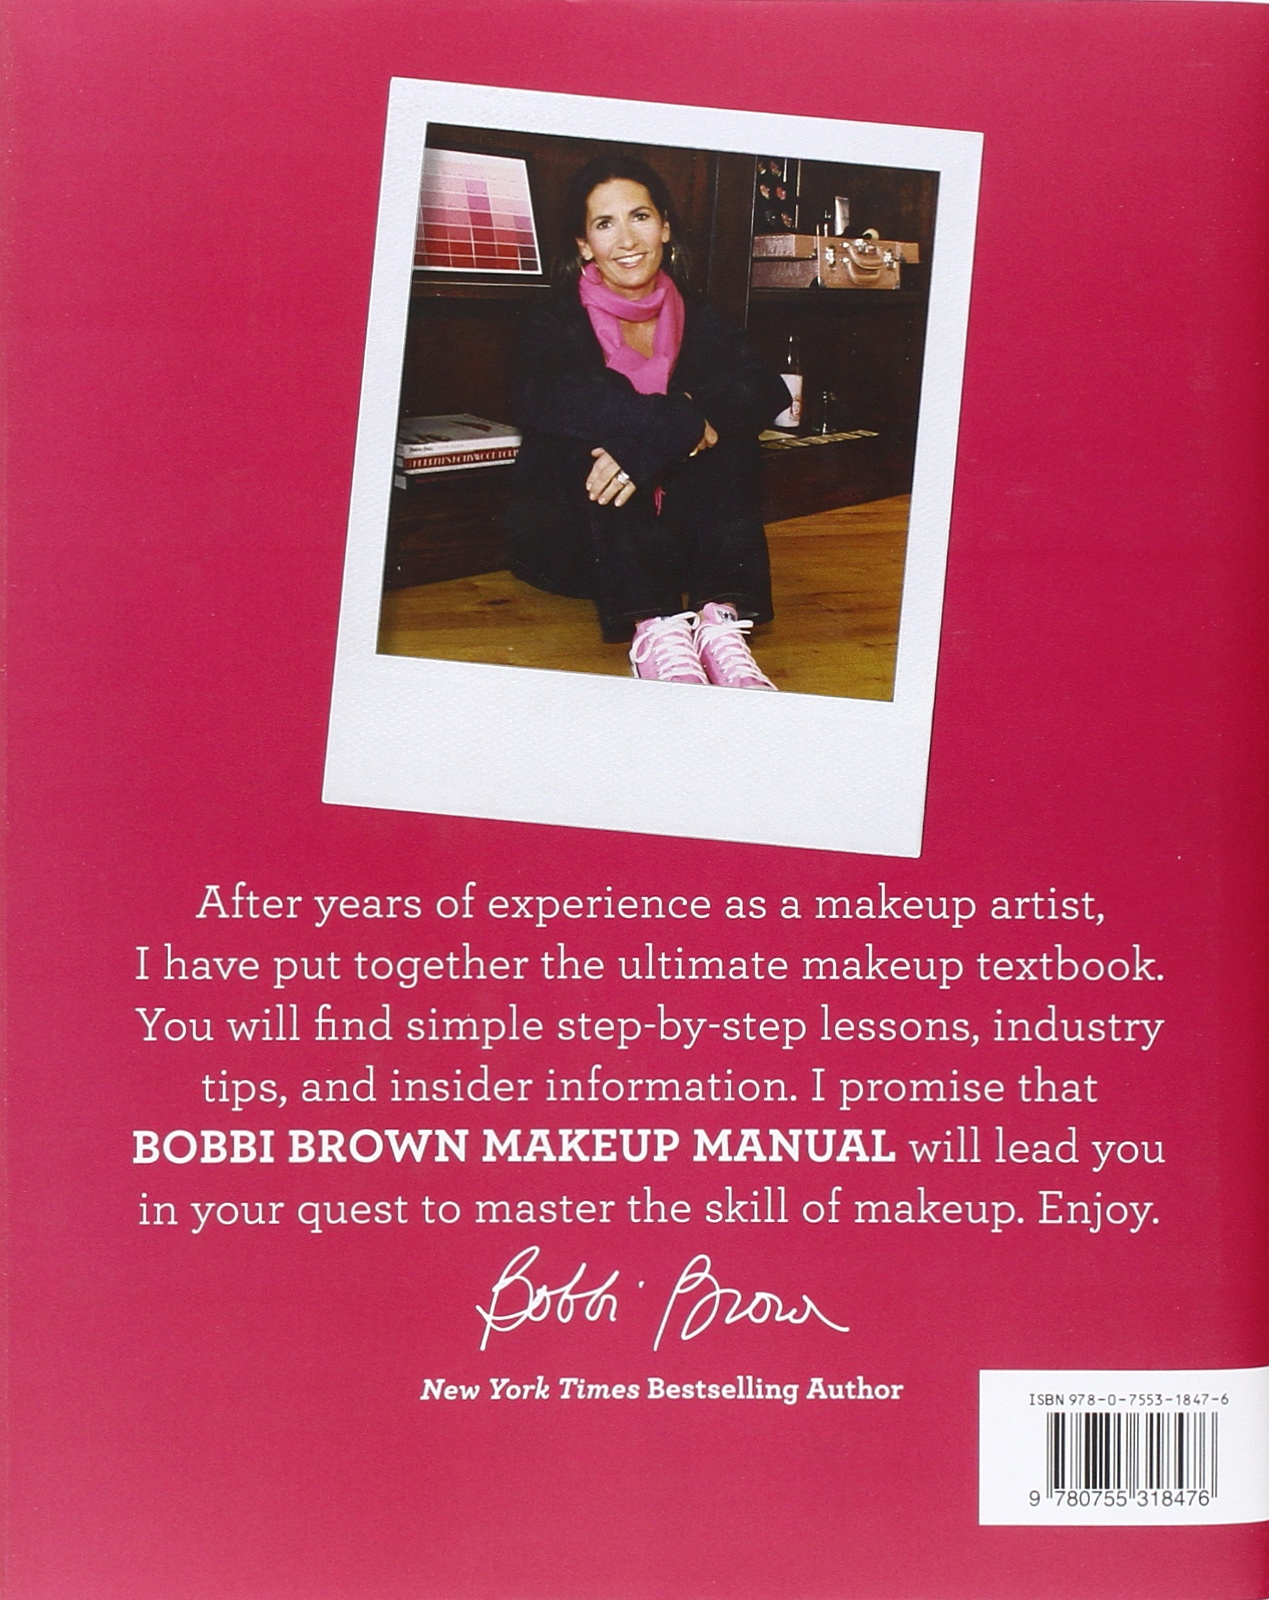 Bobbi brown makeup manual for everyone from beginner to pro amazon bobbi brown makeup manual for everyone from beginner to pro amazon bobbi brown 9780755318476 books fandeluxe Choice Image